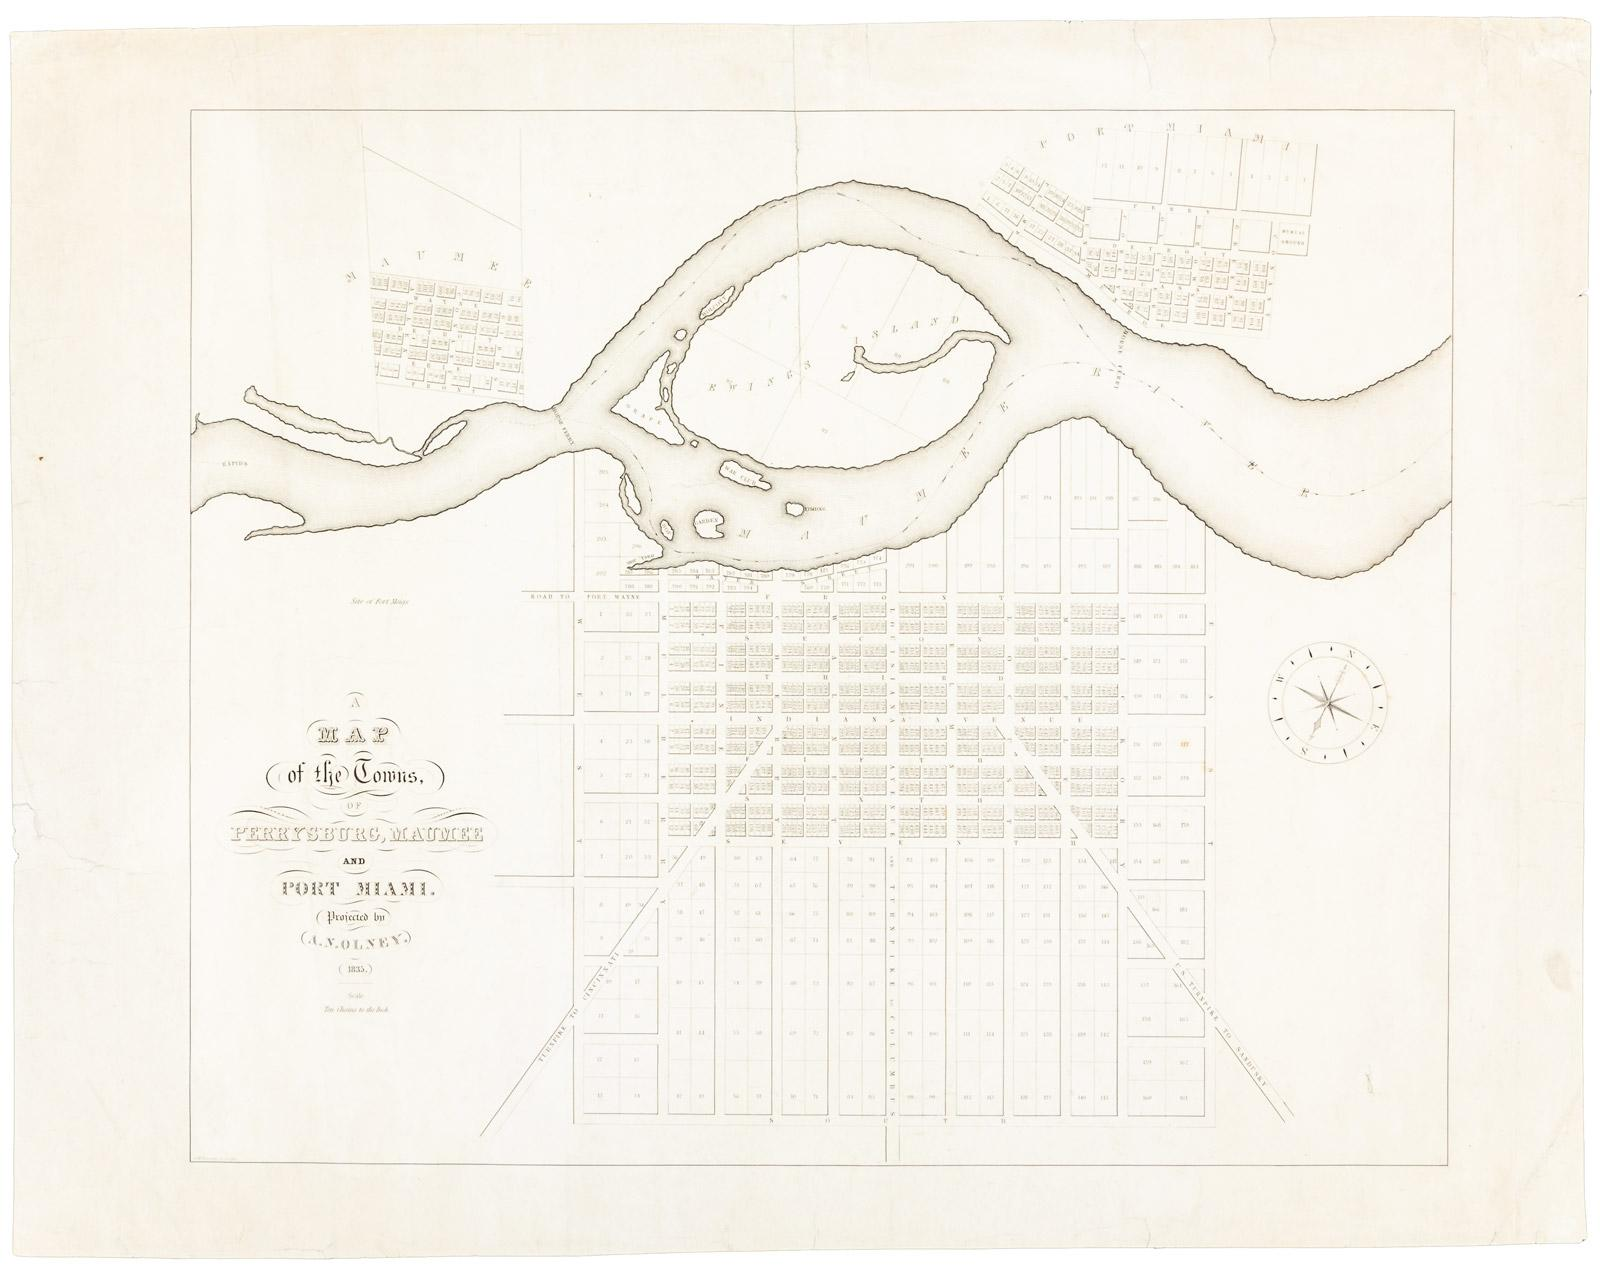 Worksheet. A Map of the Towns of Perrysburg Maumee and Port Miami  Price